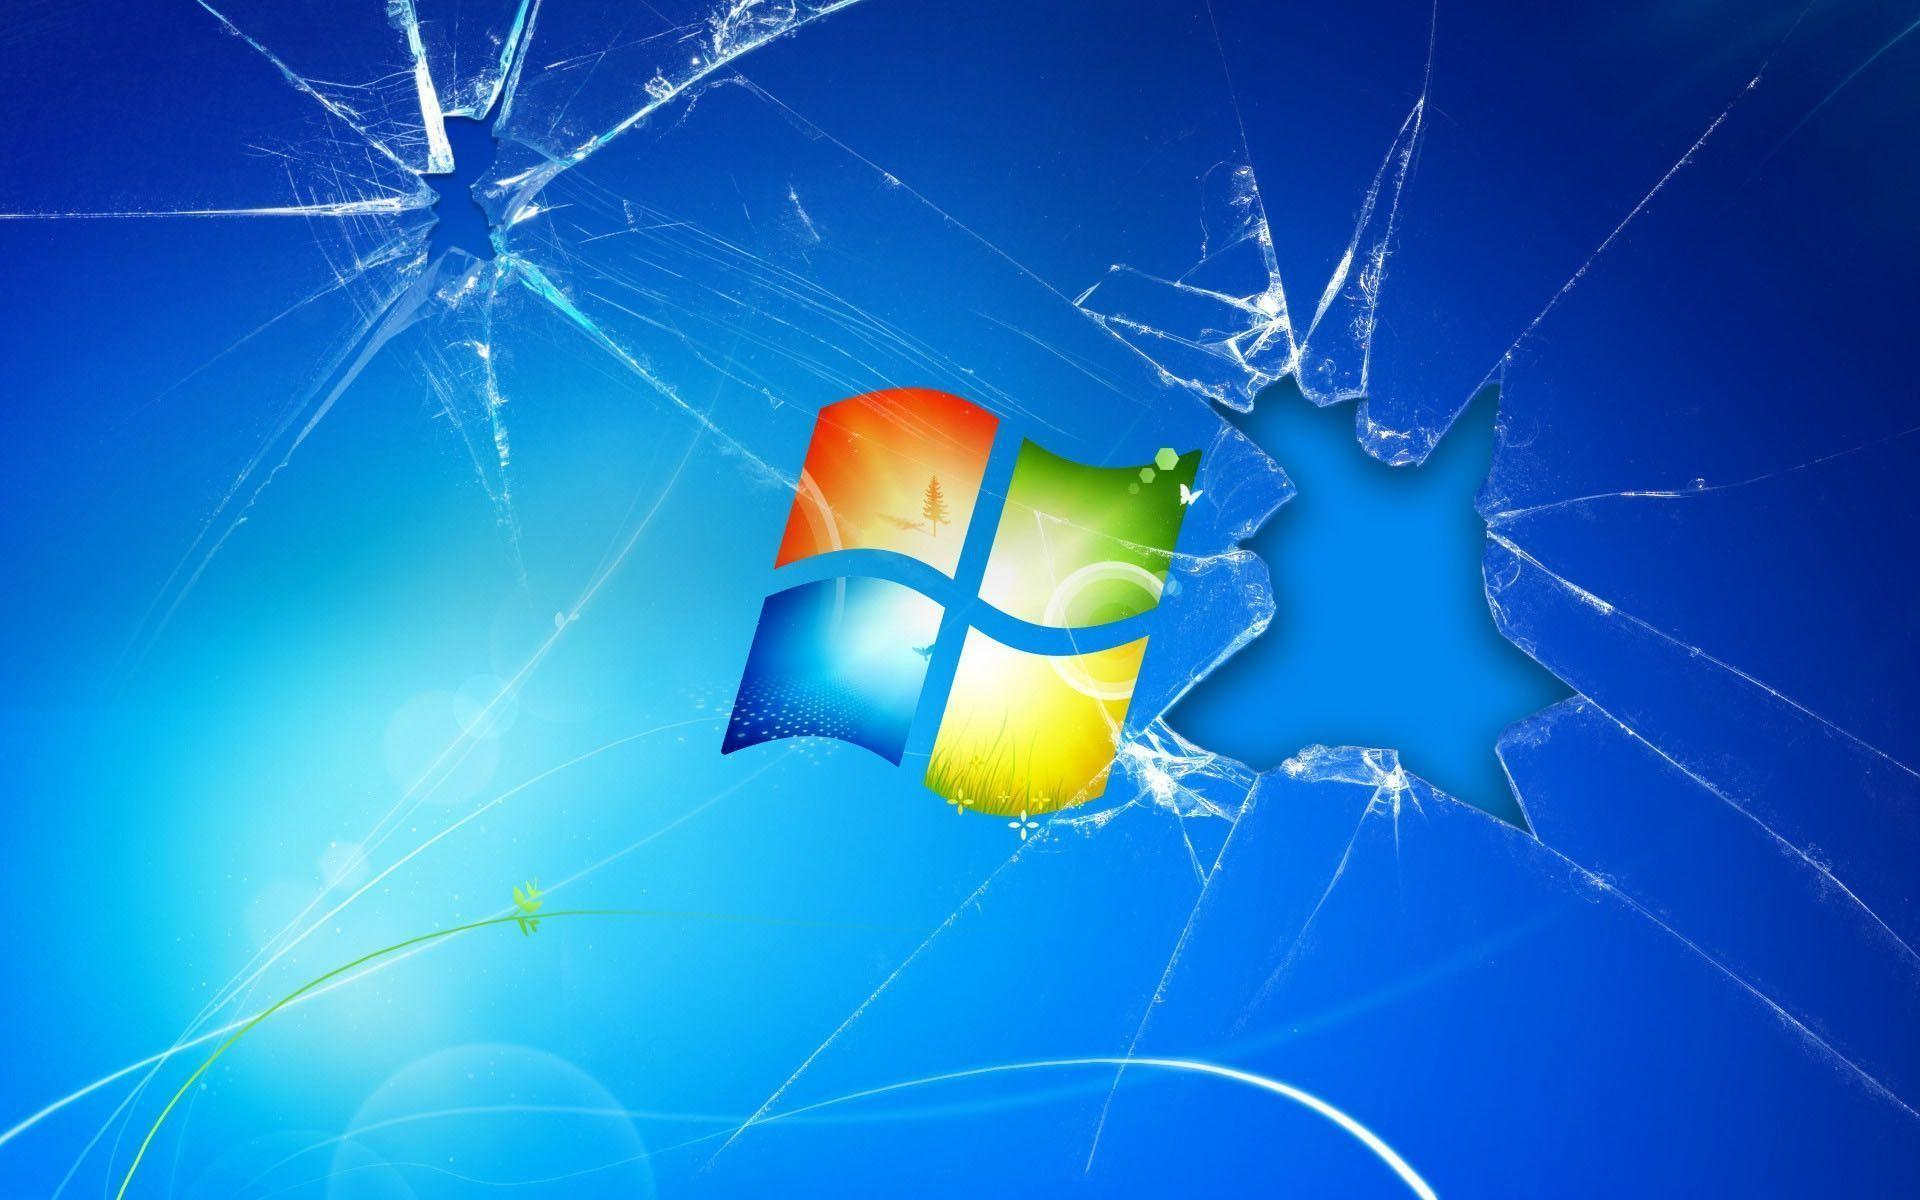 Cracked Screen Wallpapers - Wallpaper Cave